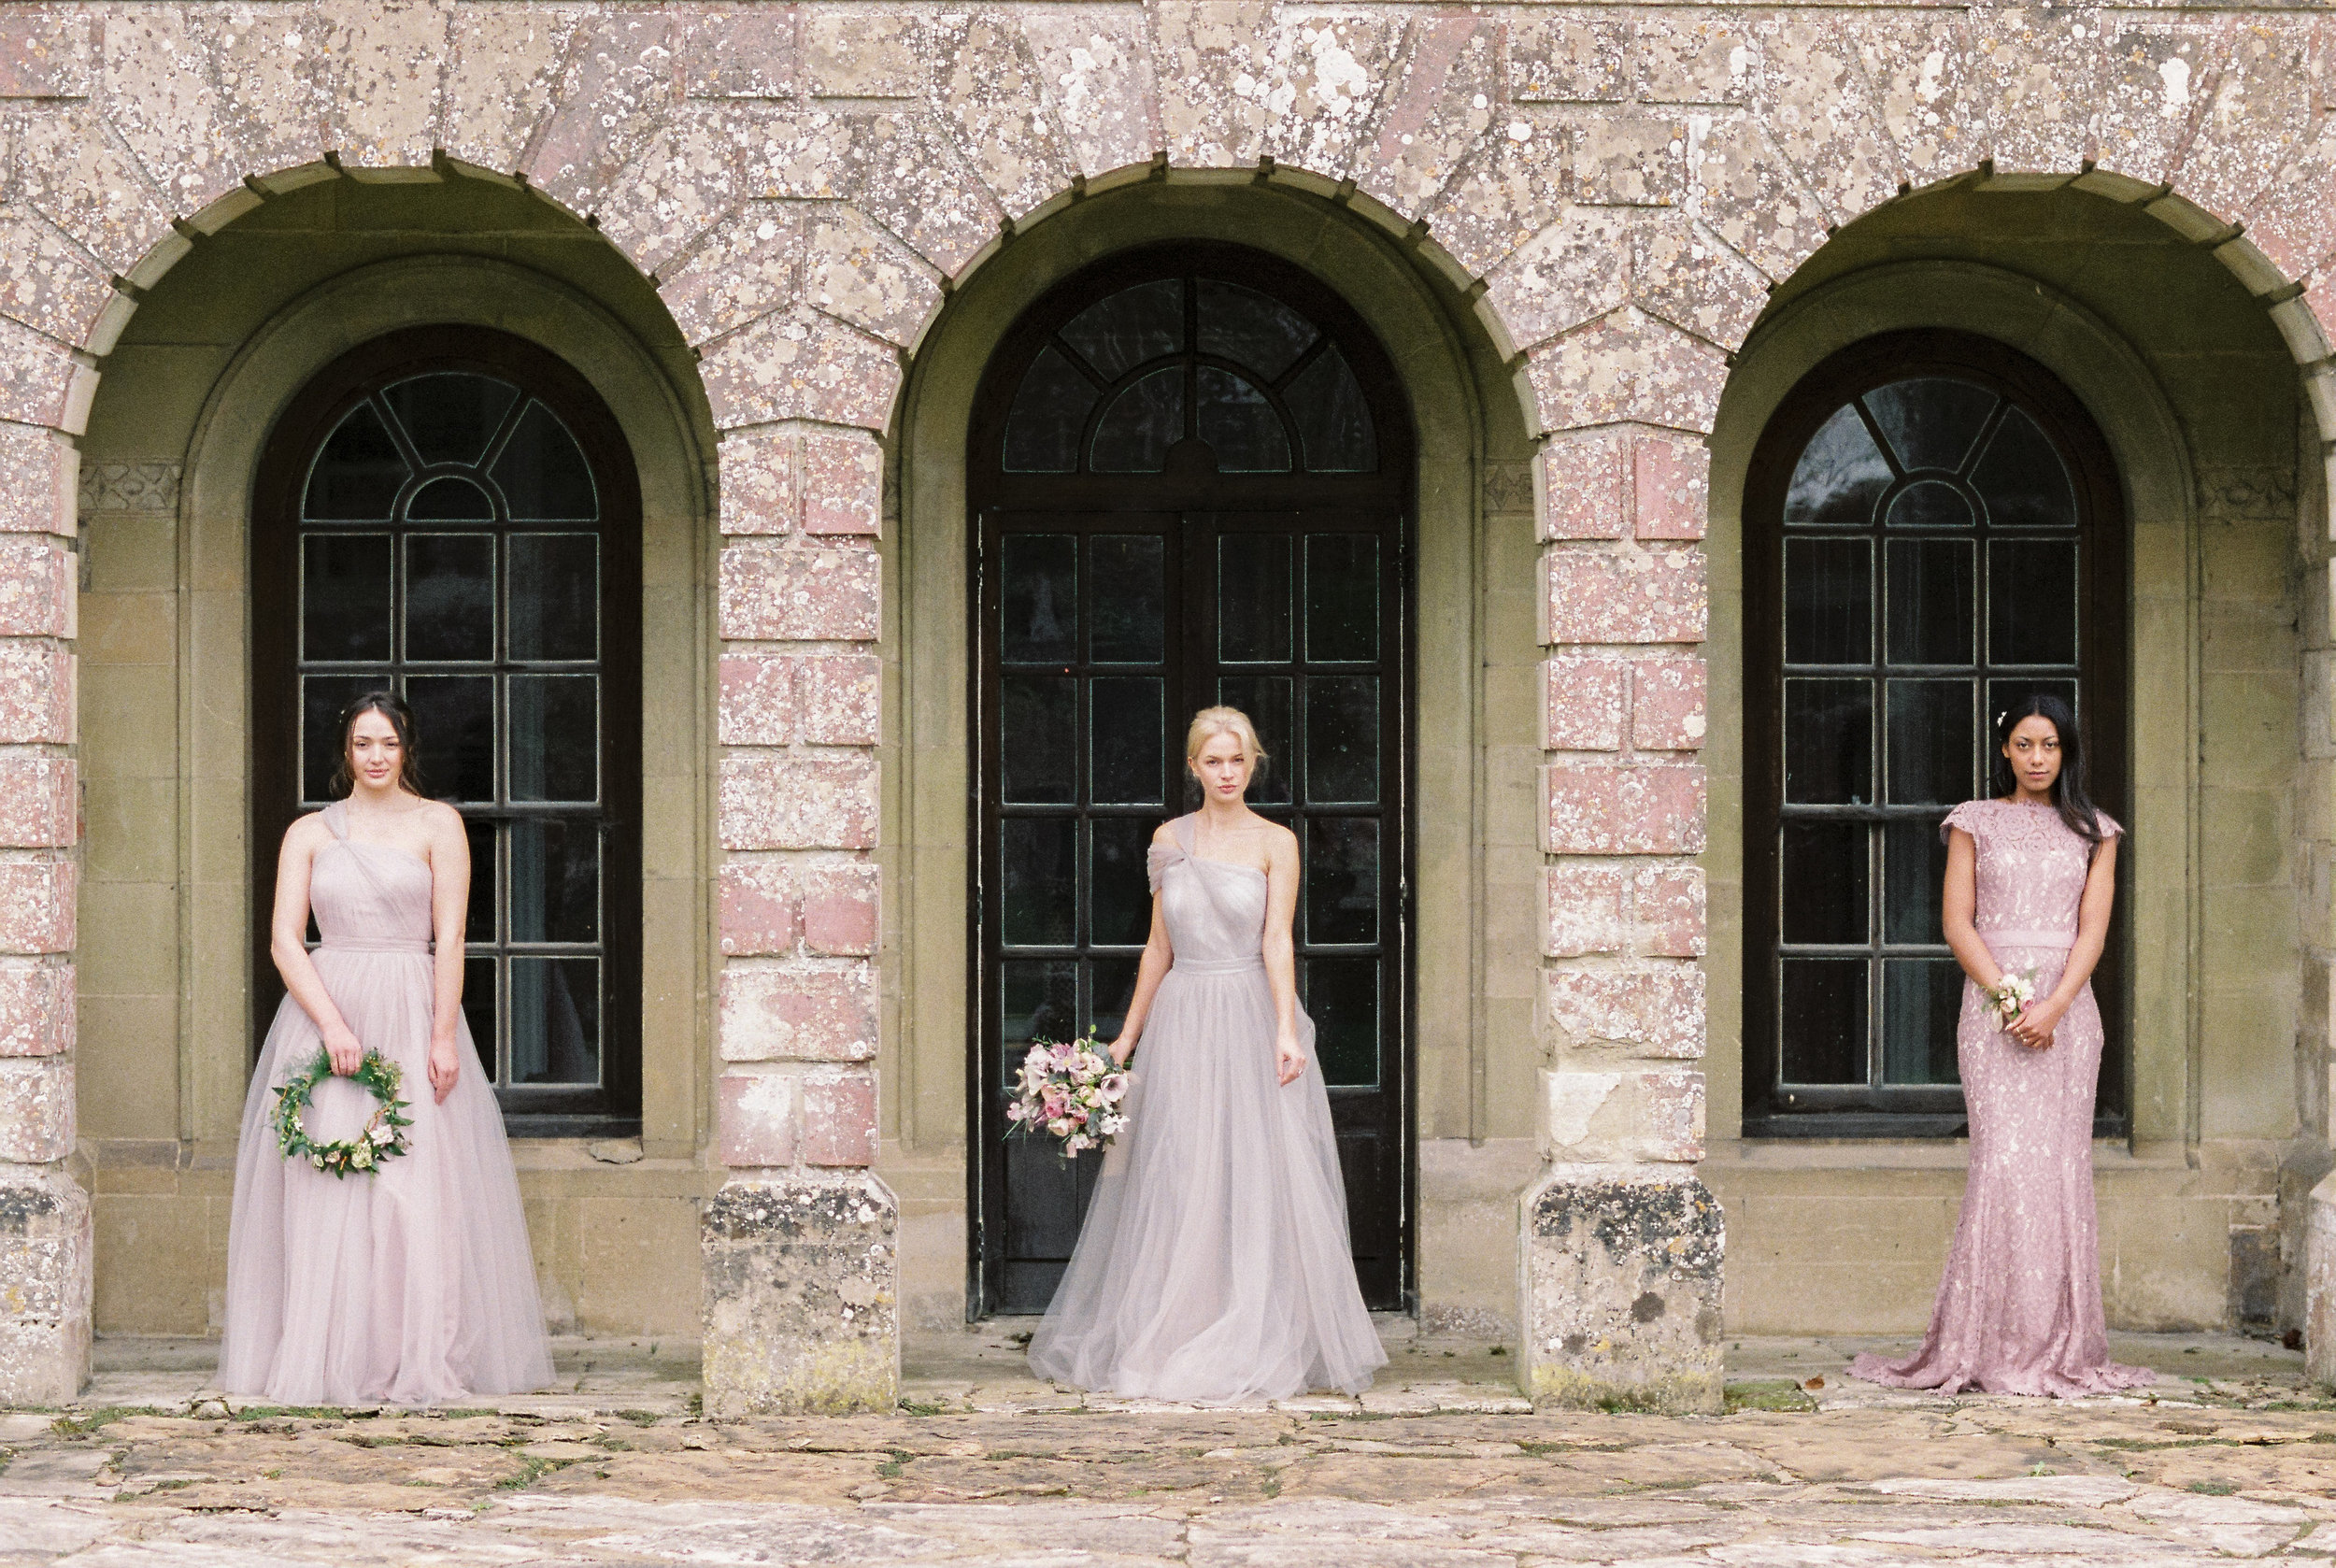 Bridal hair styling by Victoria Fergusson for fine art editorial by Bowtie and Belle (43).jpg